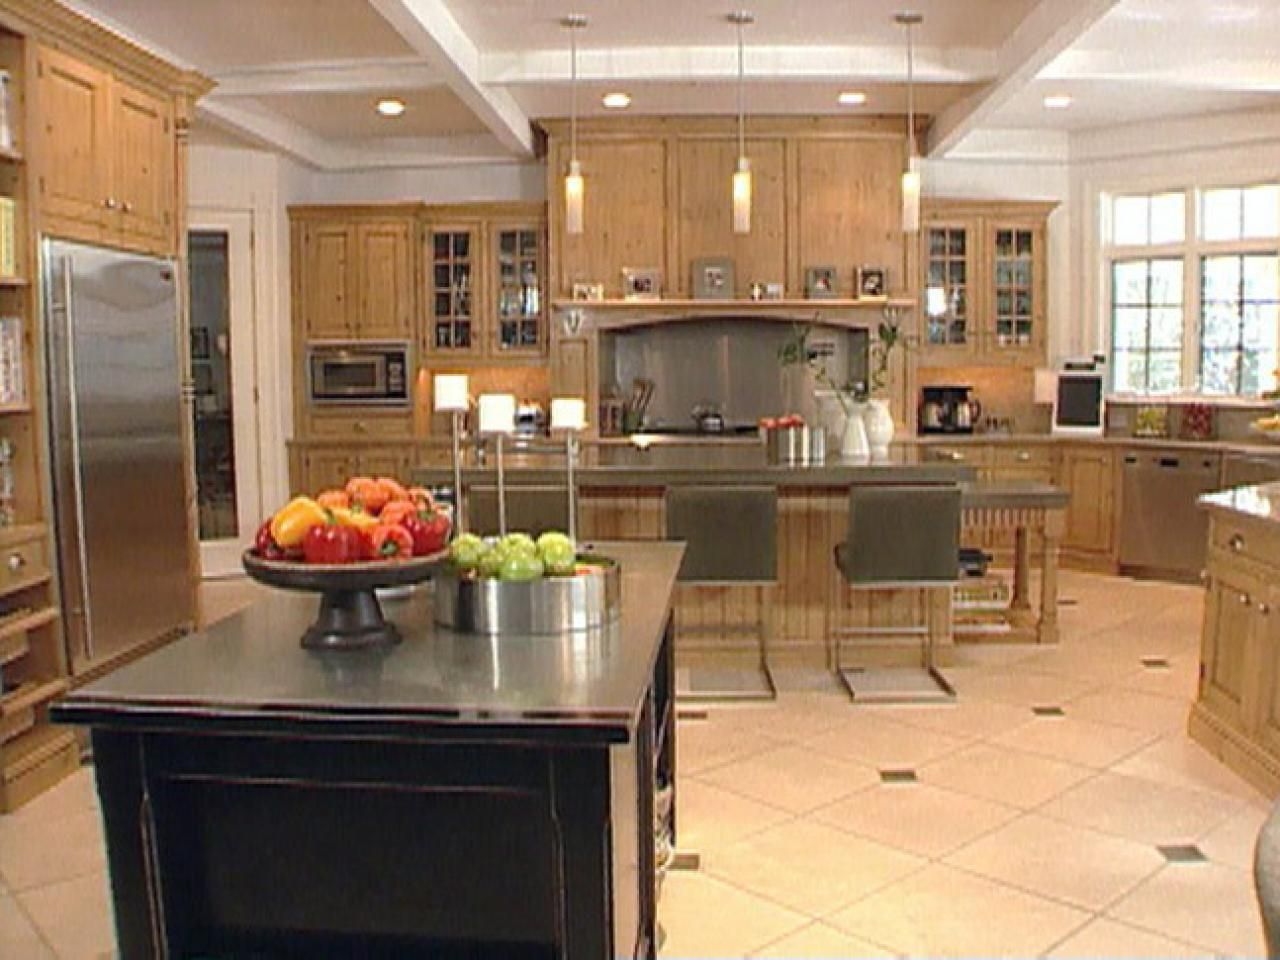 100+ How Much are Kitchen Remodels - Kitchen Design Ideas for Small ...